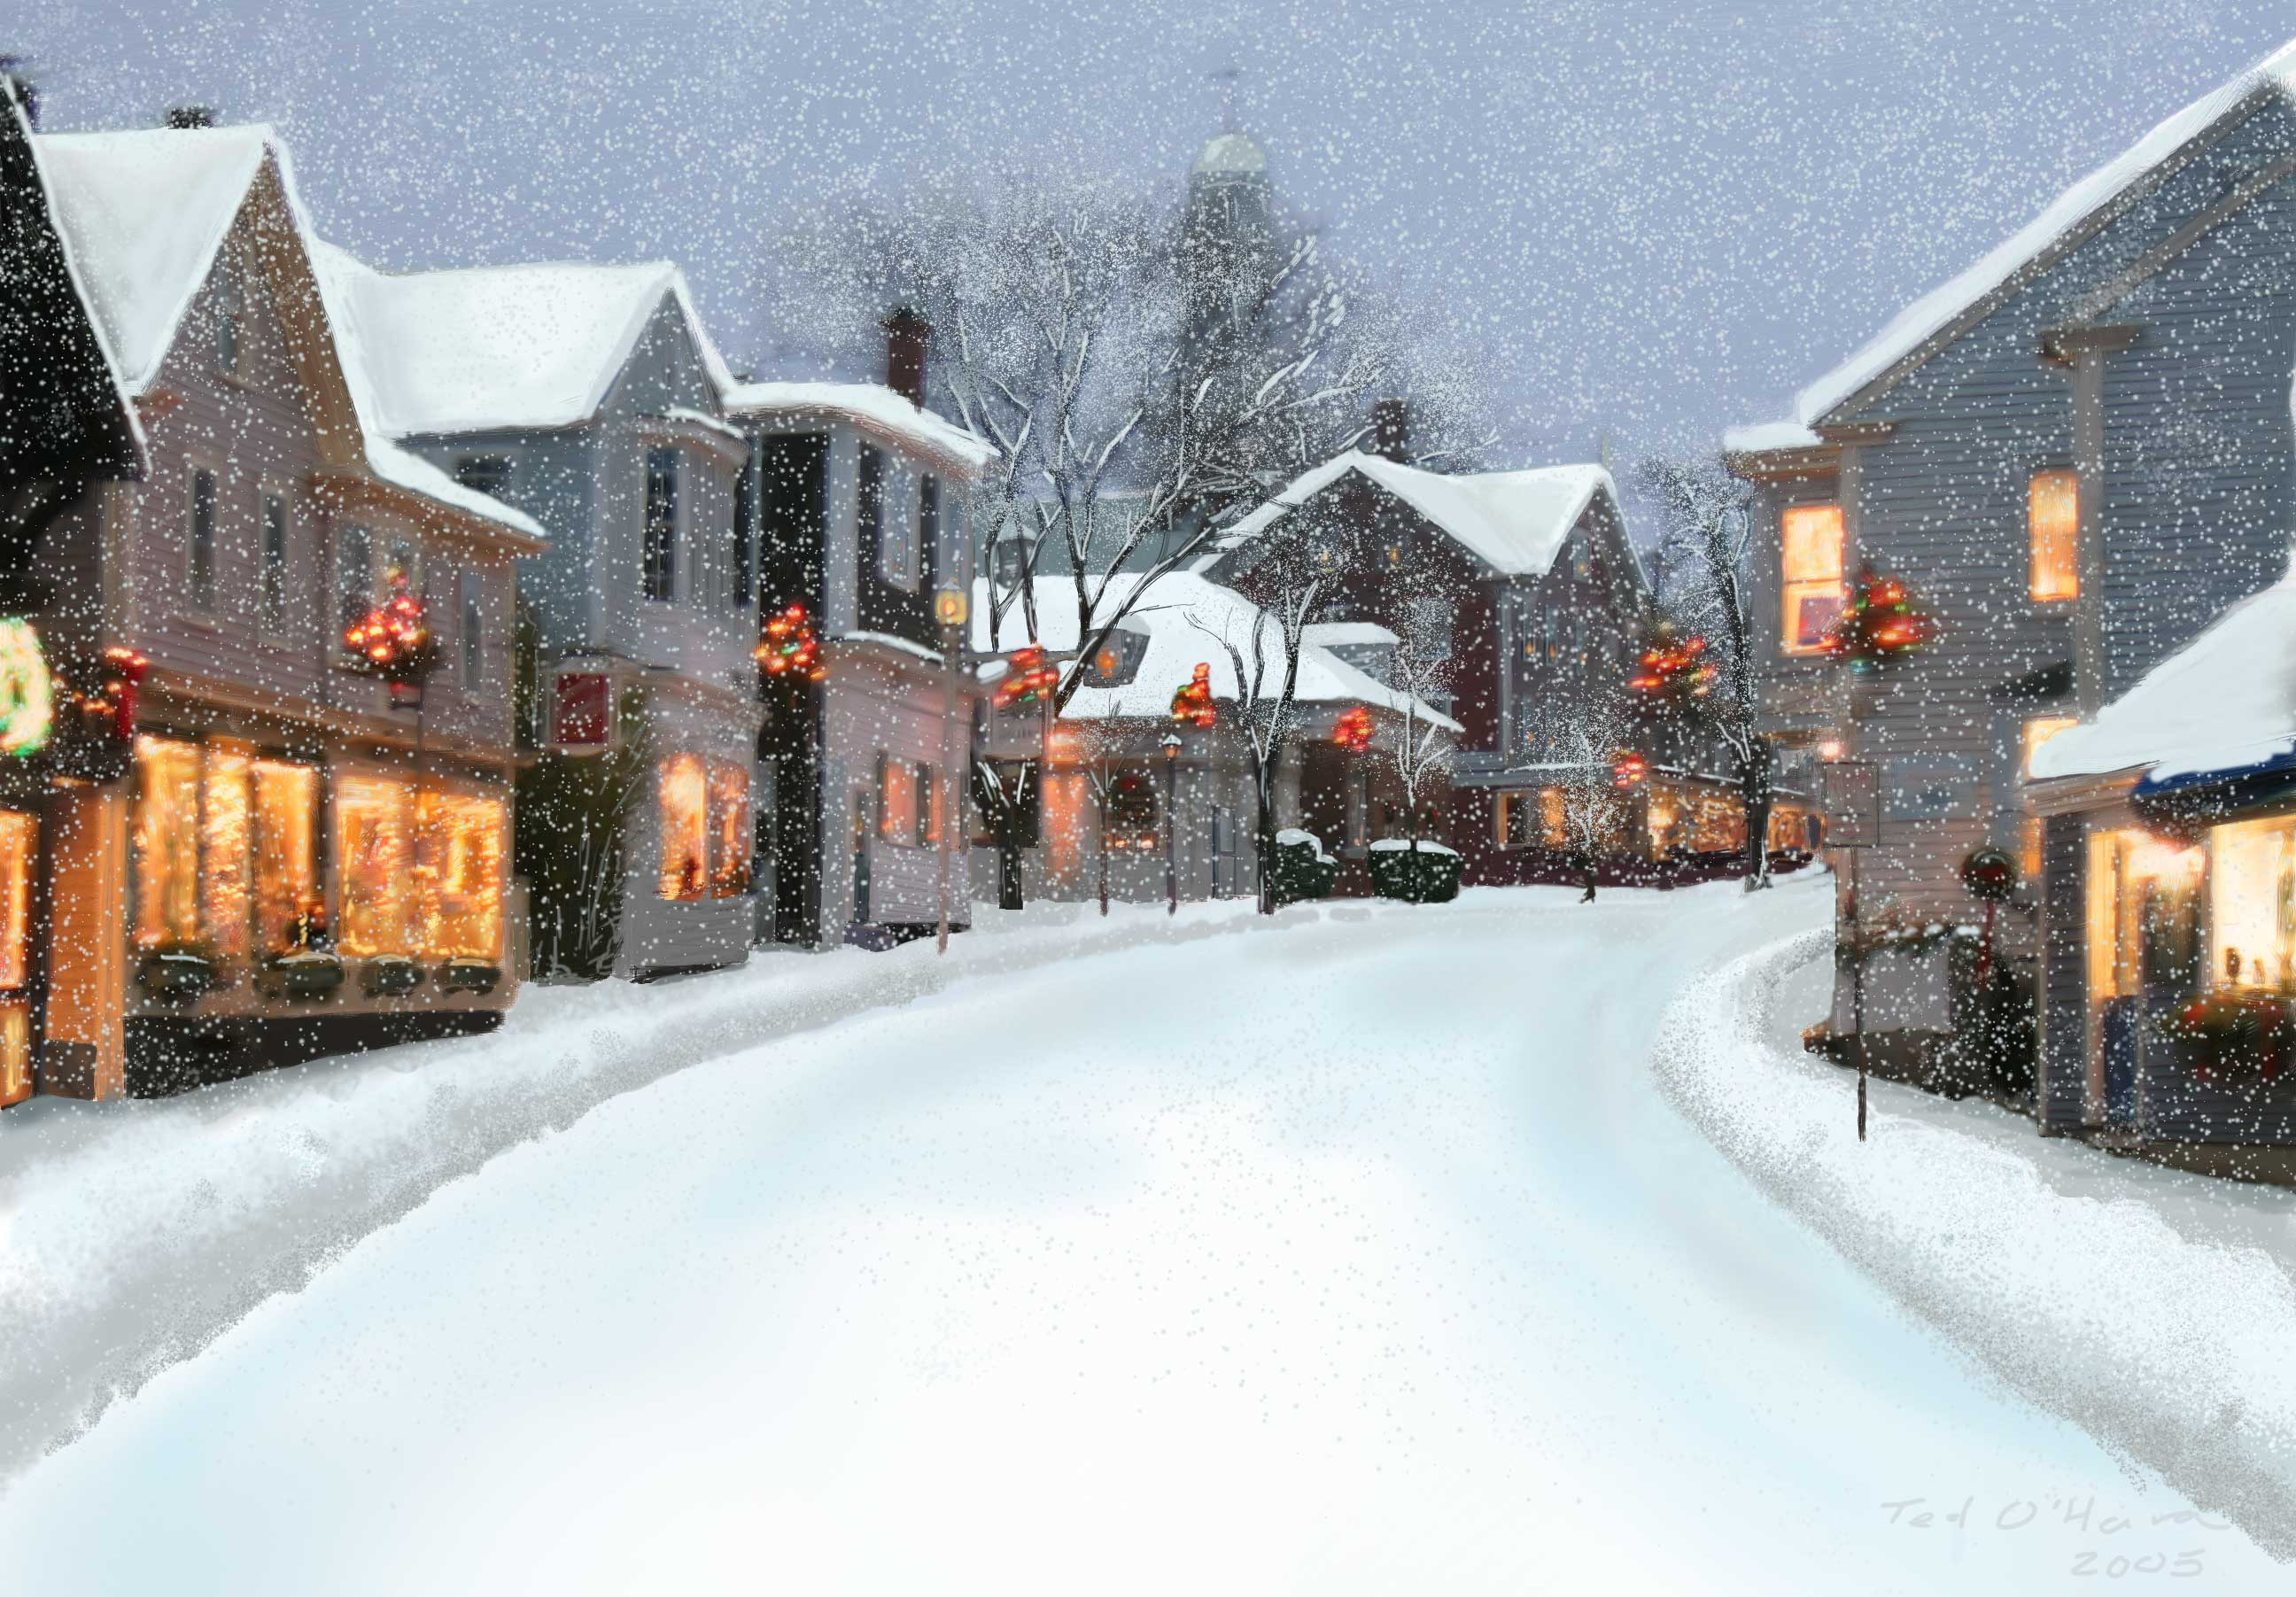 Snowy Rockport: my 2005 card